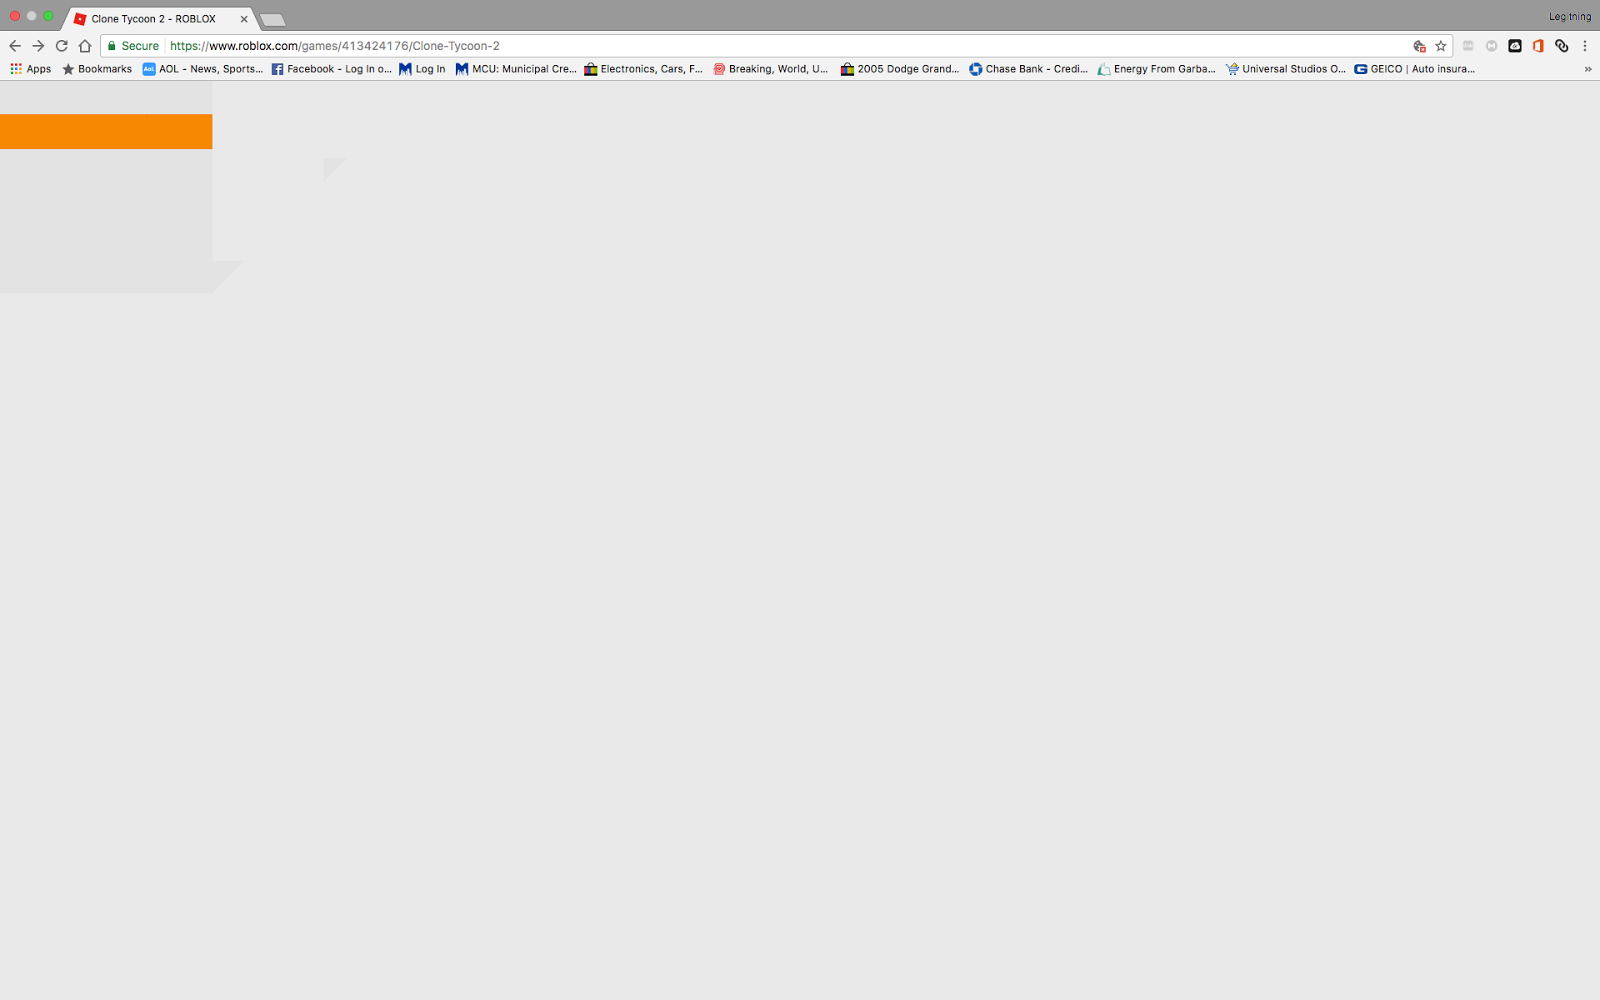 I have a problem with google chrome, it keeps on glitching